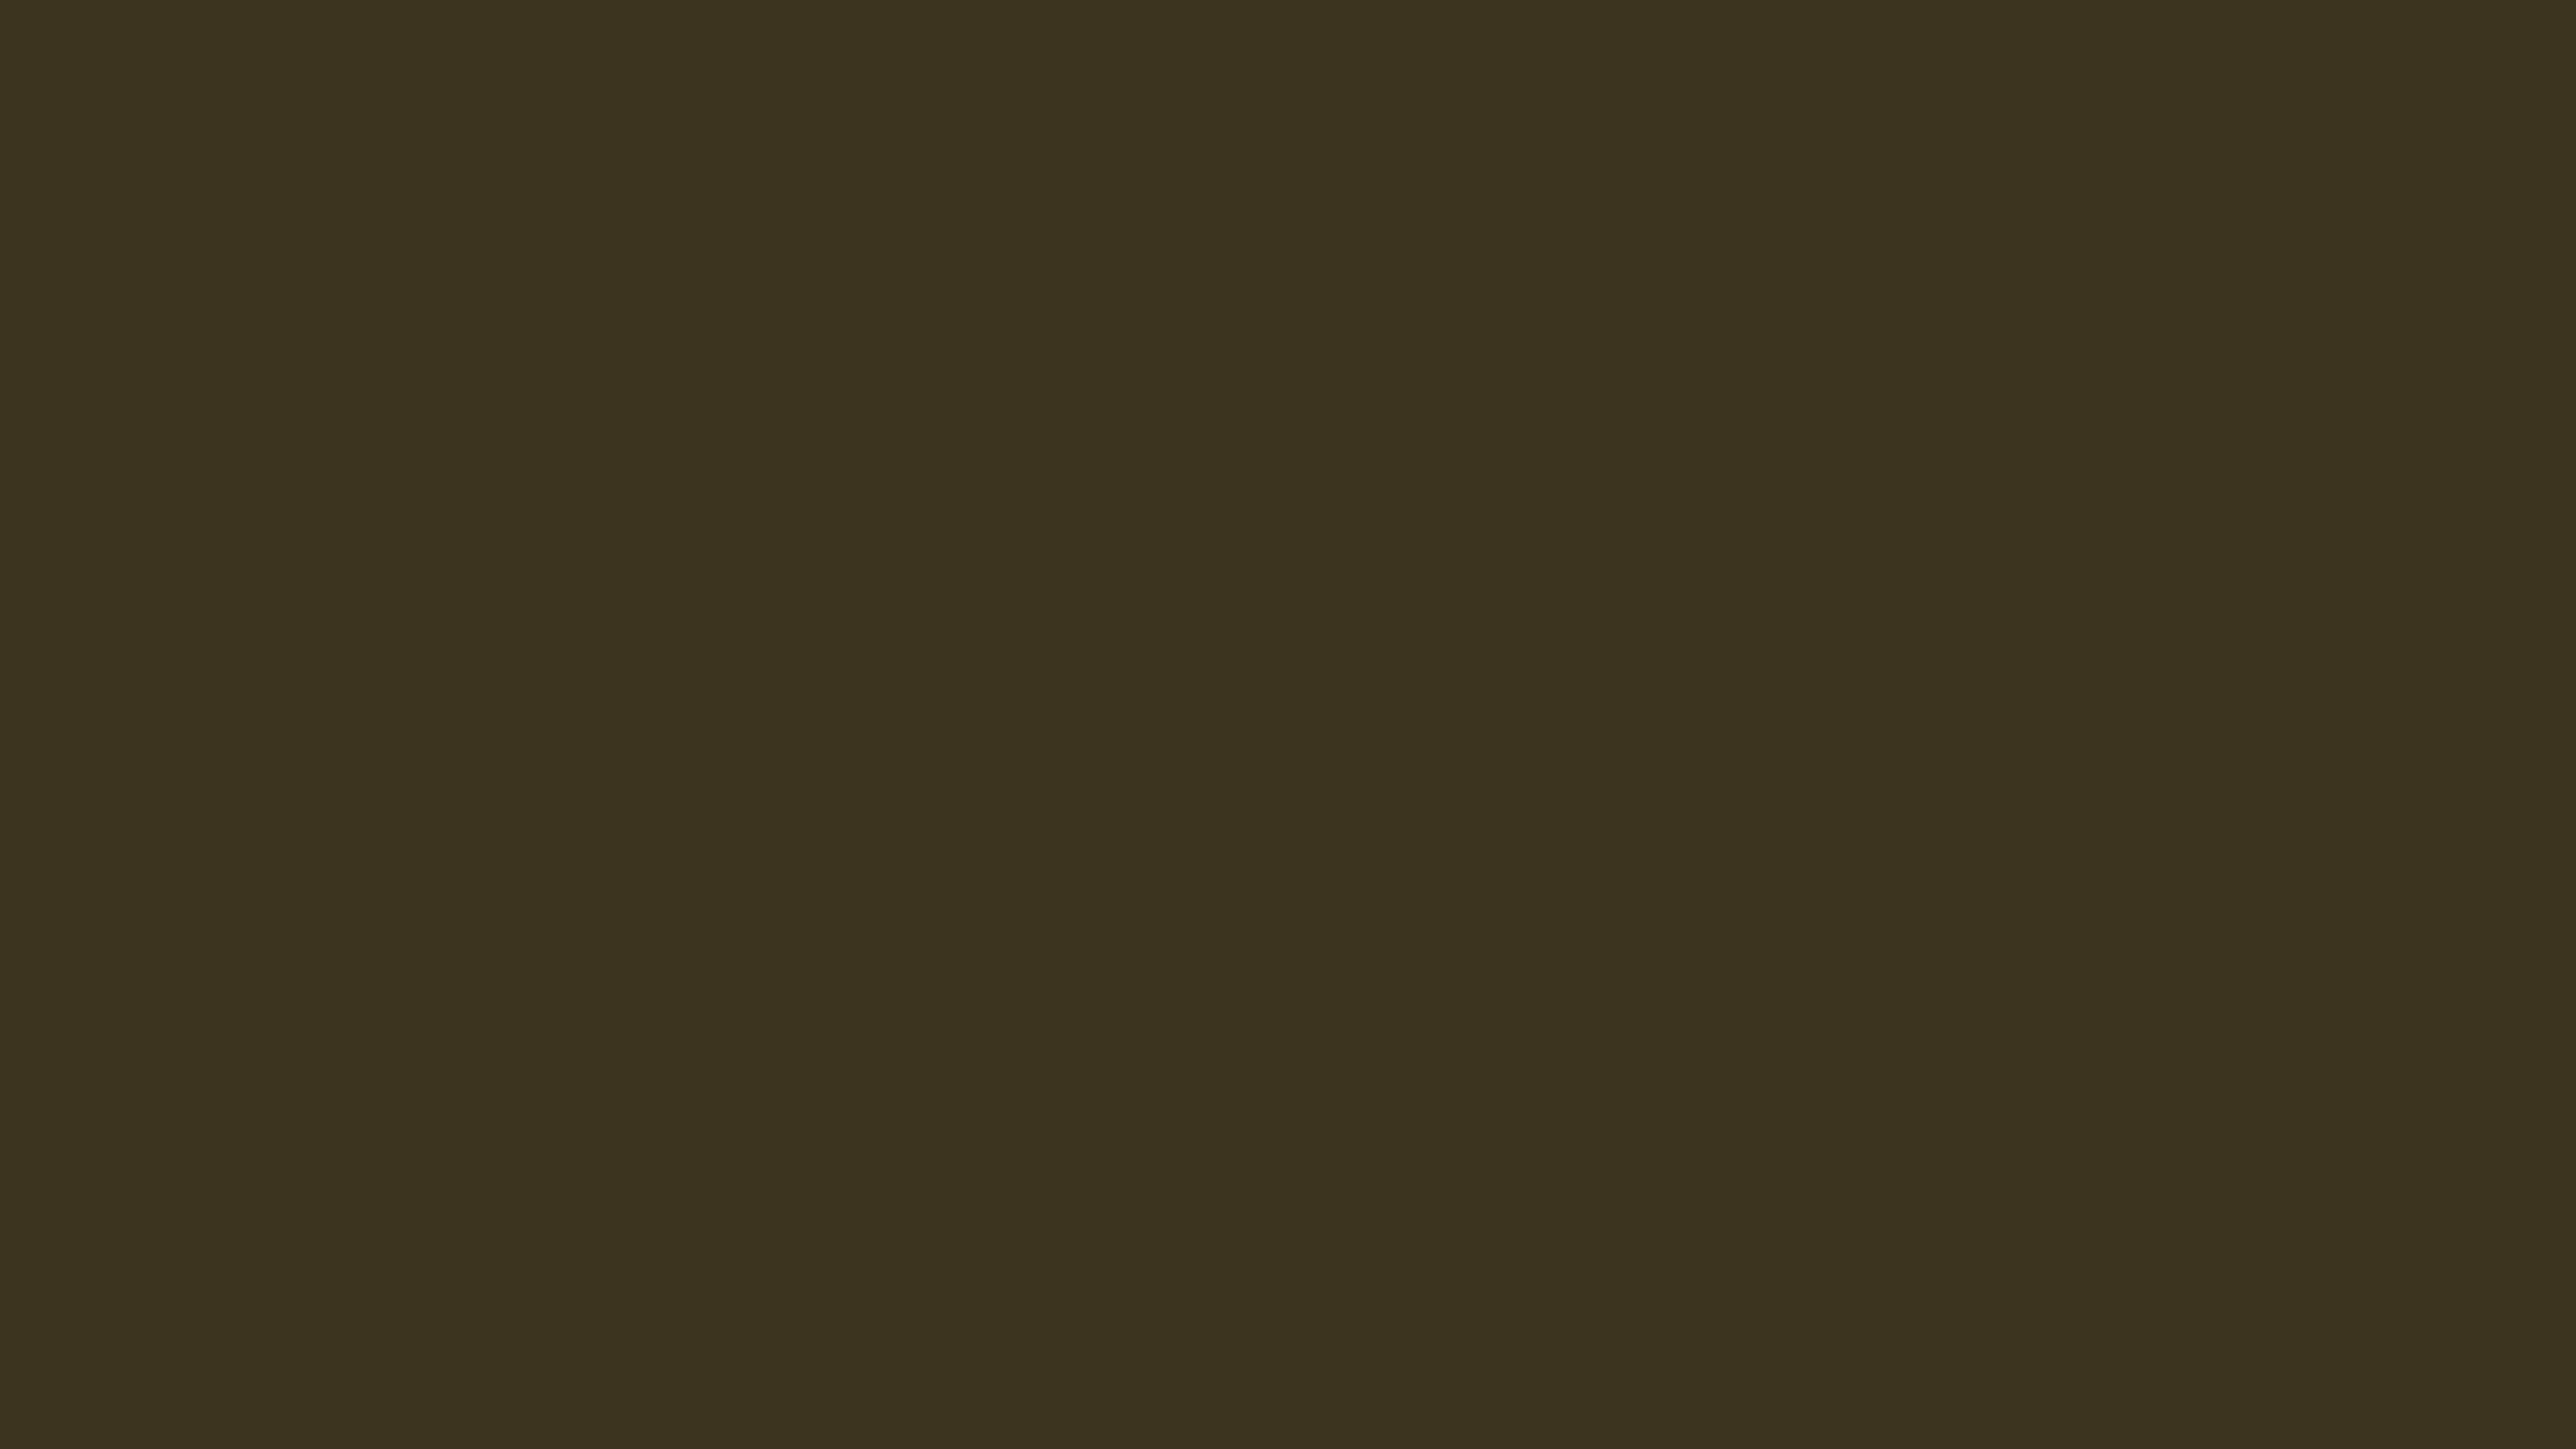 3840x2160 Olive Drab Number Seven Solid Color Background